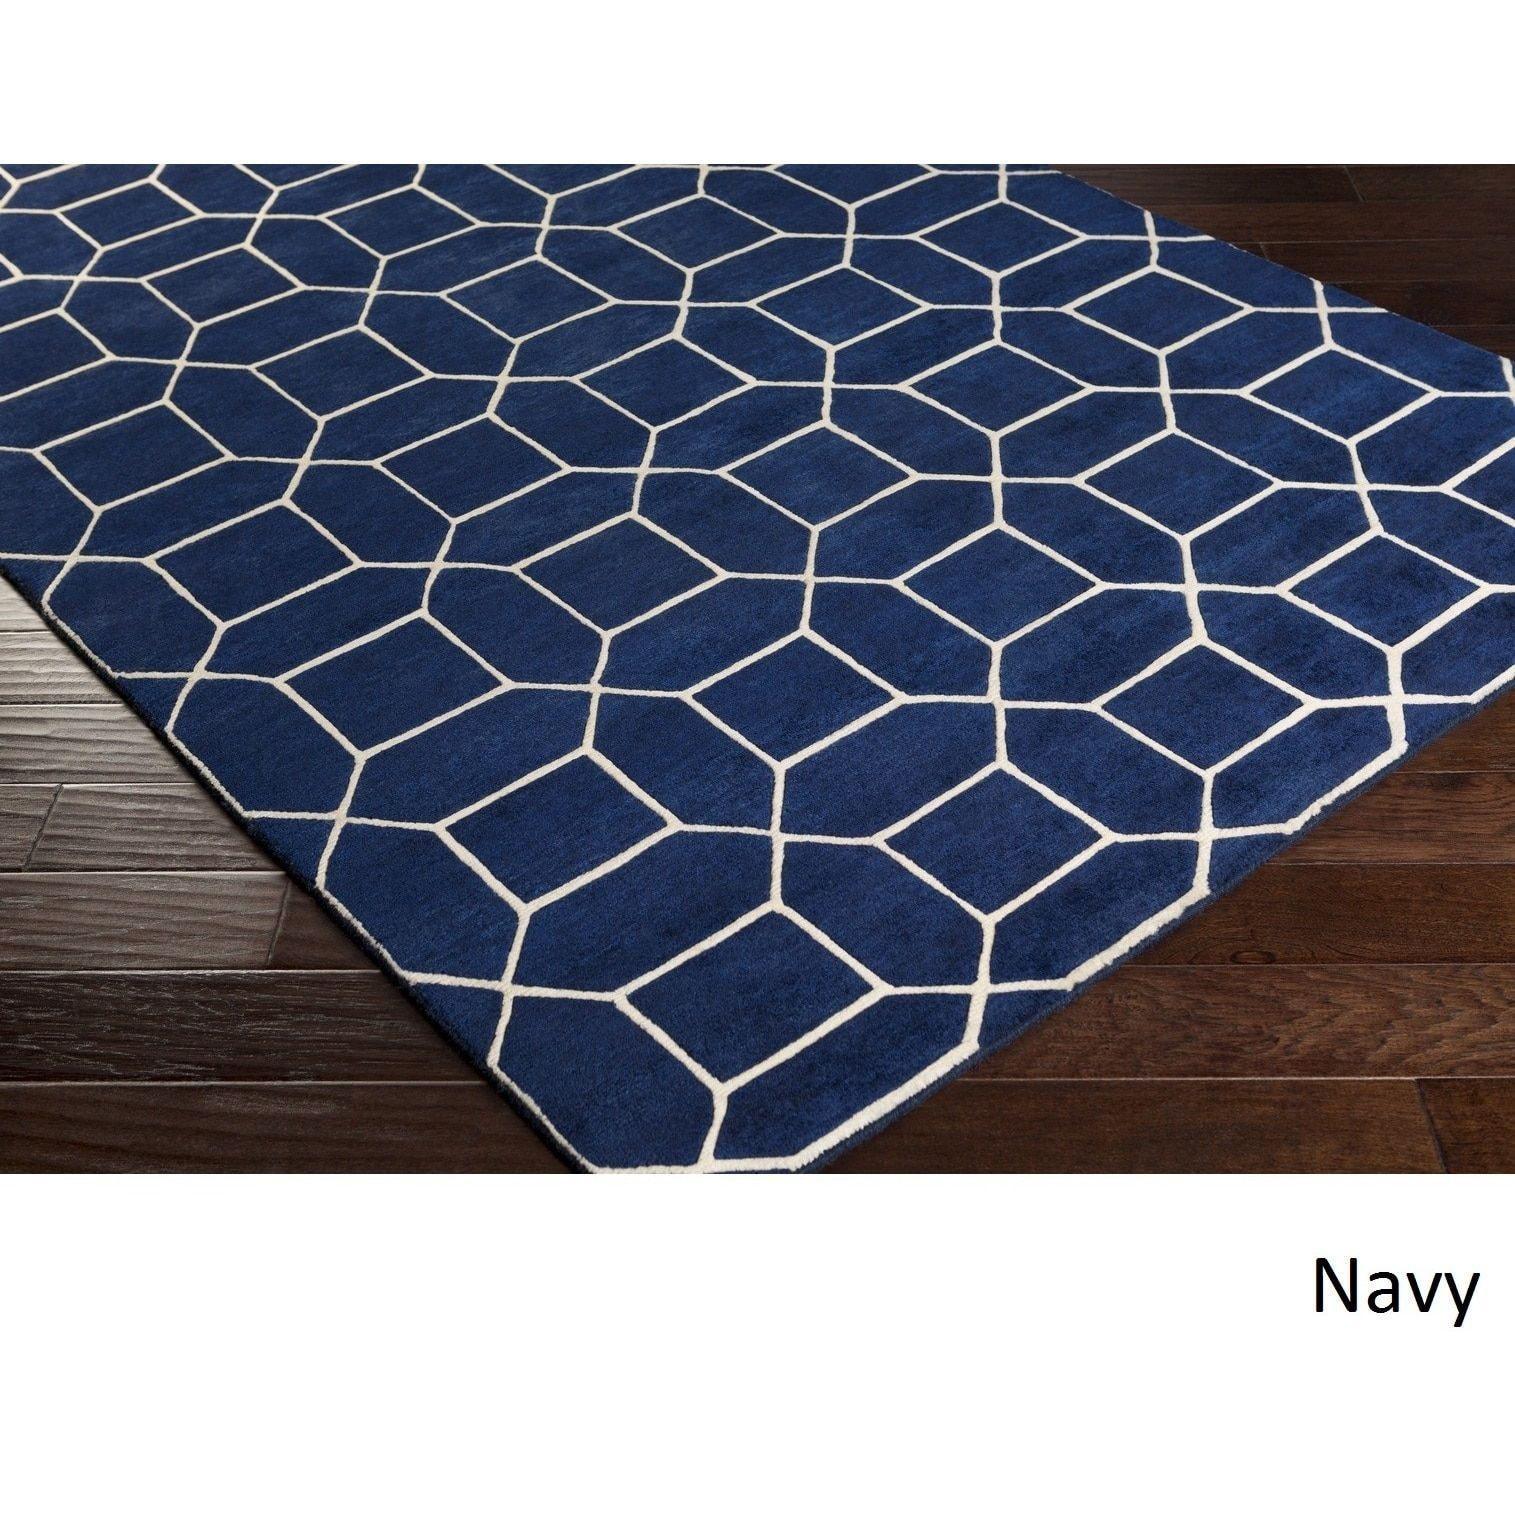 coral blue pertaining to for indoor reef rug rugs plan comfy navy outdoor area